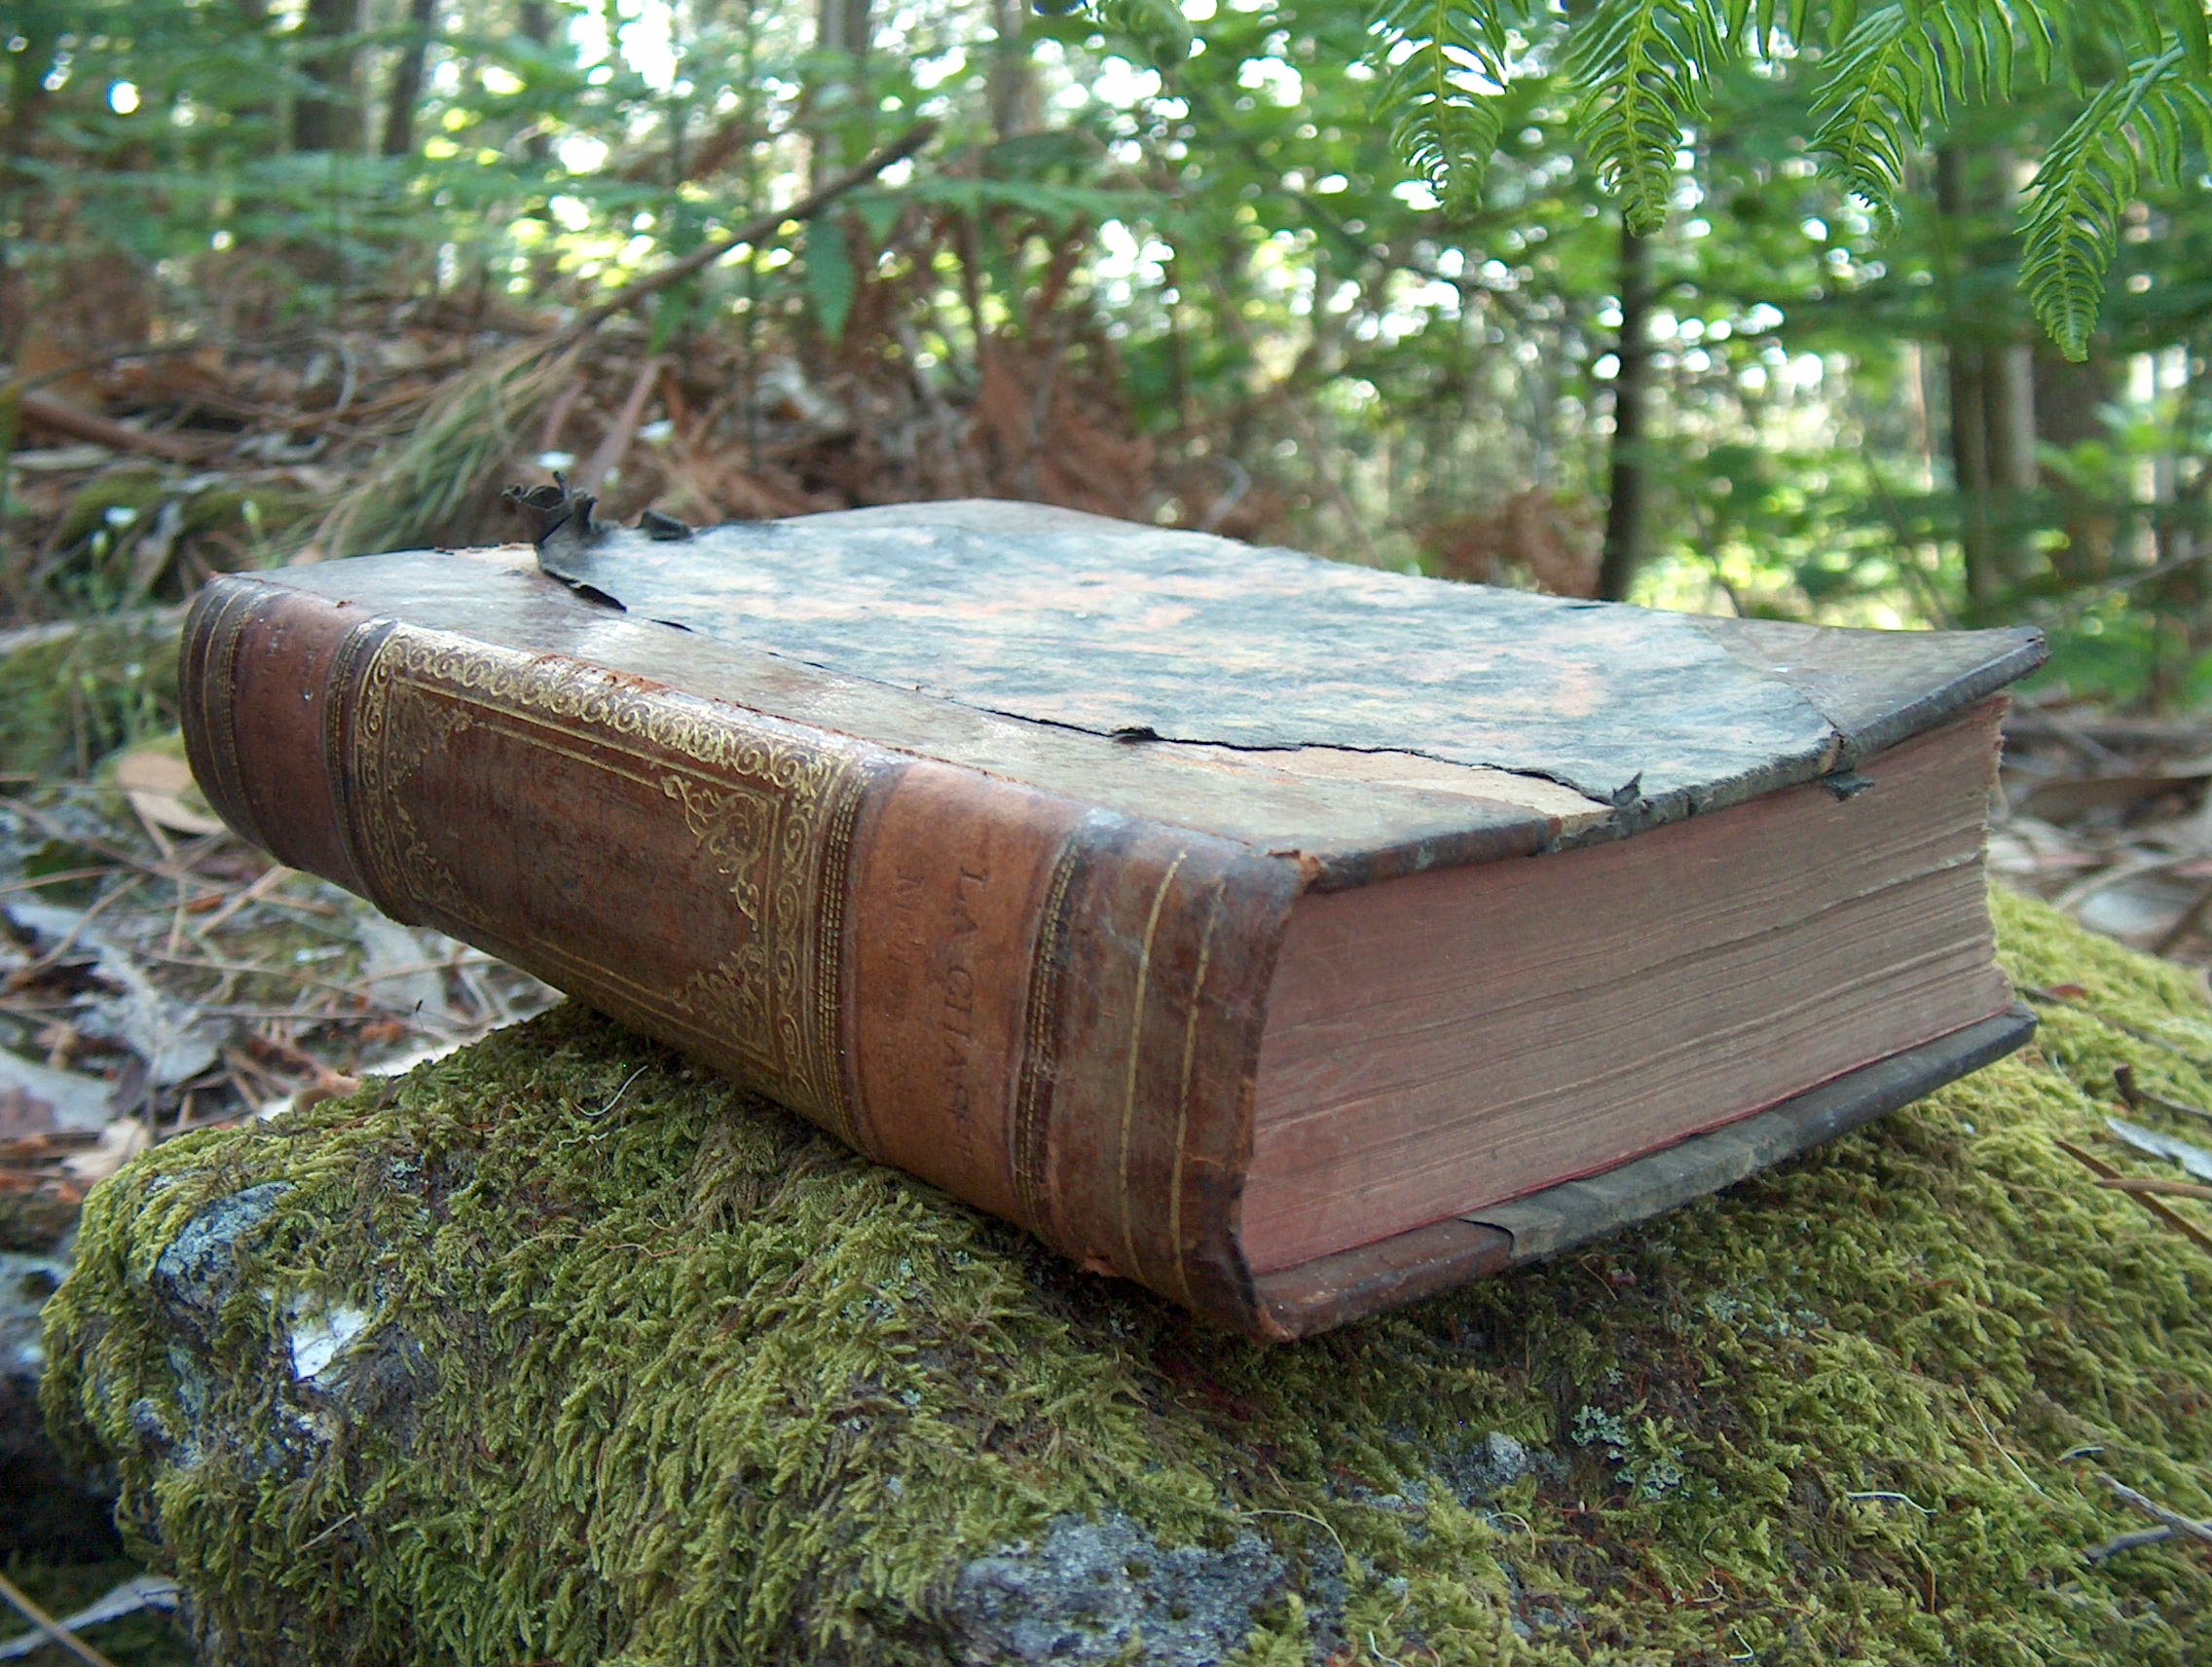 Book in Woods 3